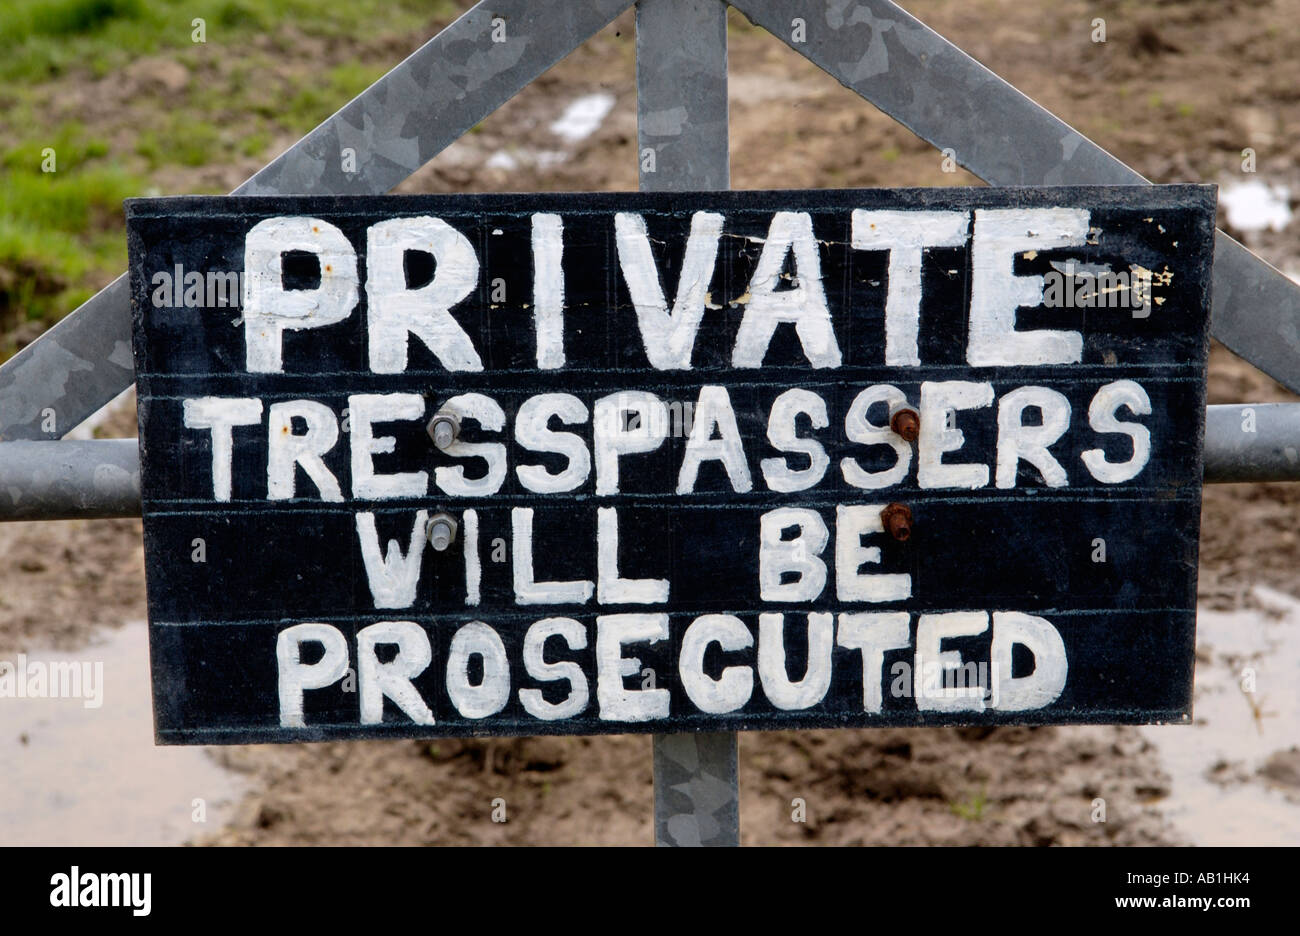 PRIVATE TRESSPASSERS WILL BE PROSECUTED sign on gate in UK - Stock Image